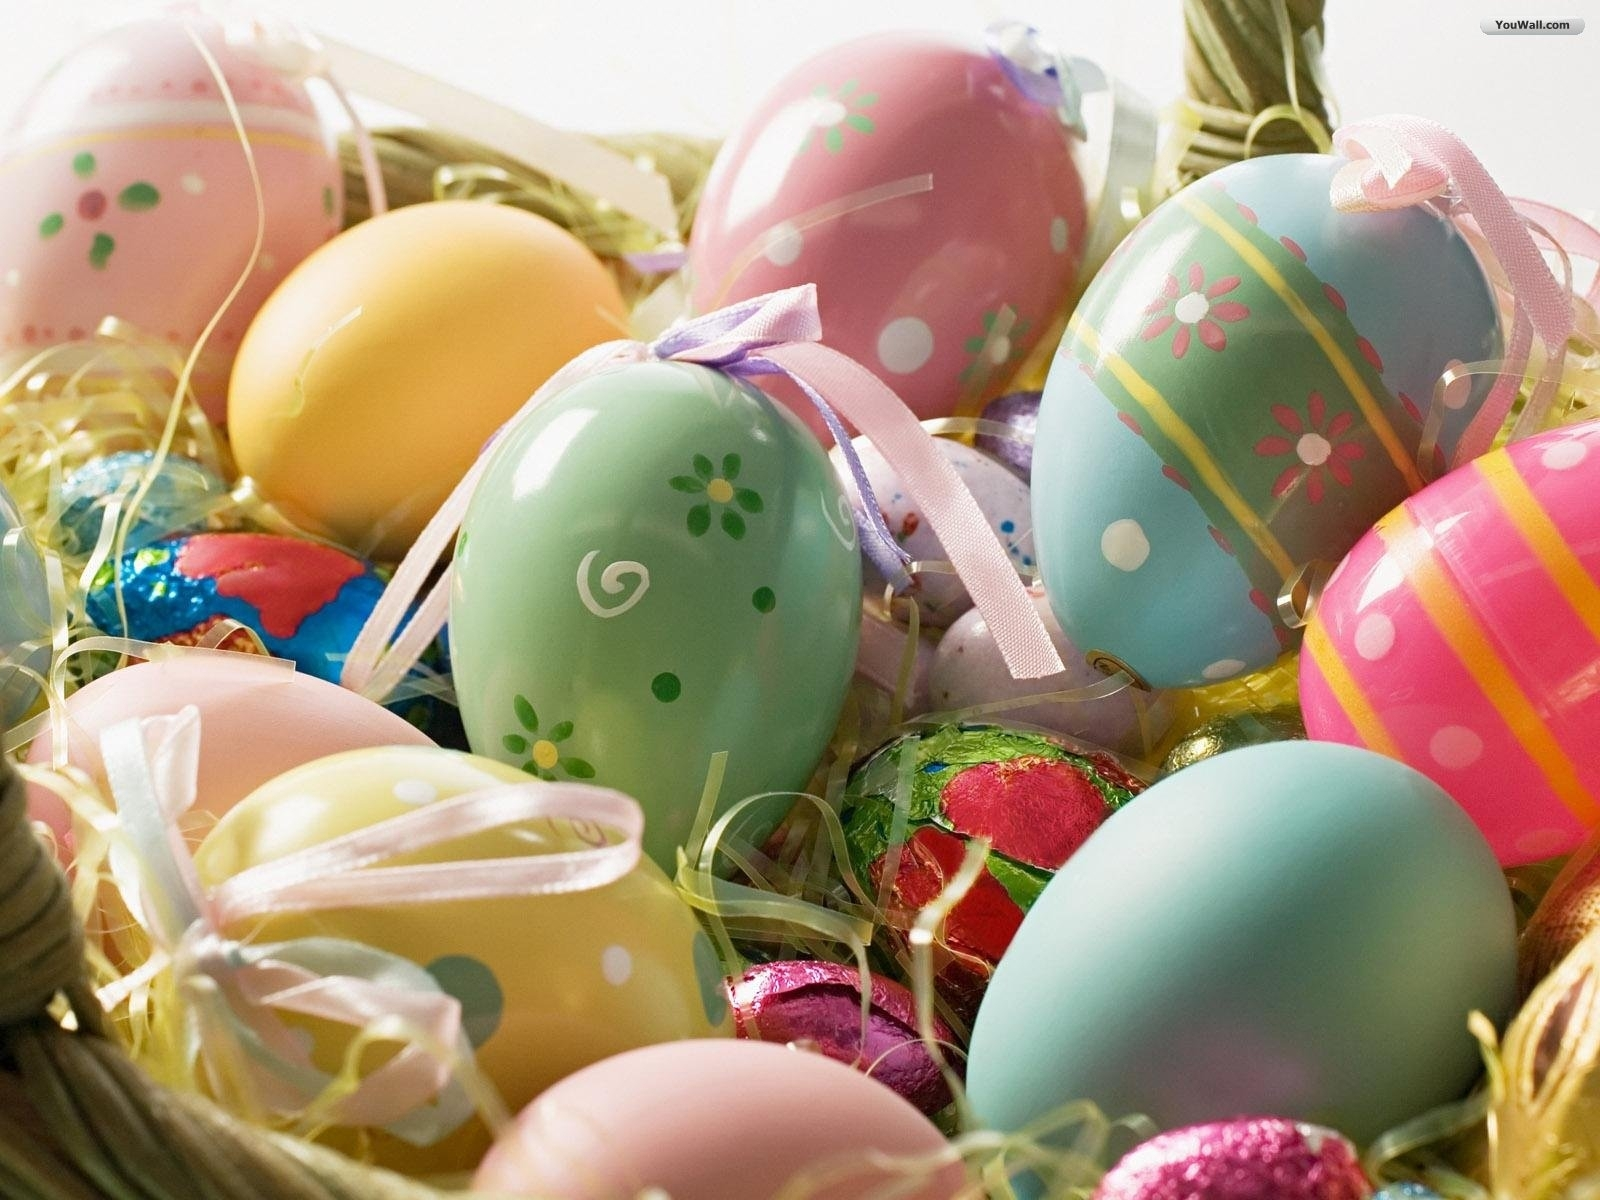 Title Free Easter Wallpaper For Computer Top Backgrounds Ampamp Wallpapers Dimension 1600 X 1200 File Type JPG JPEG